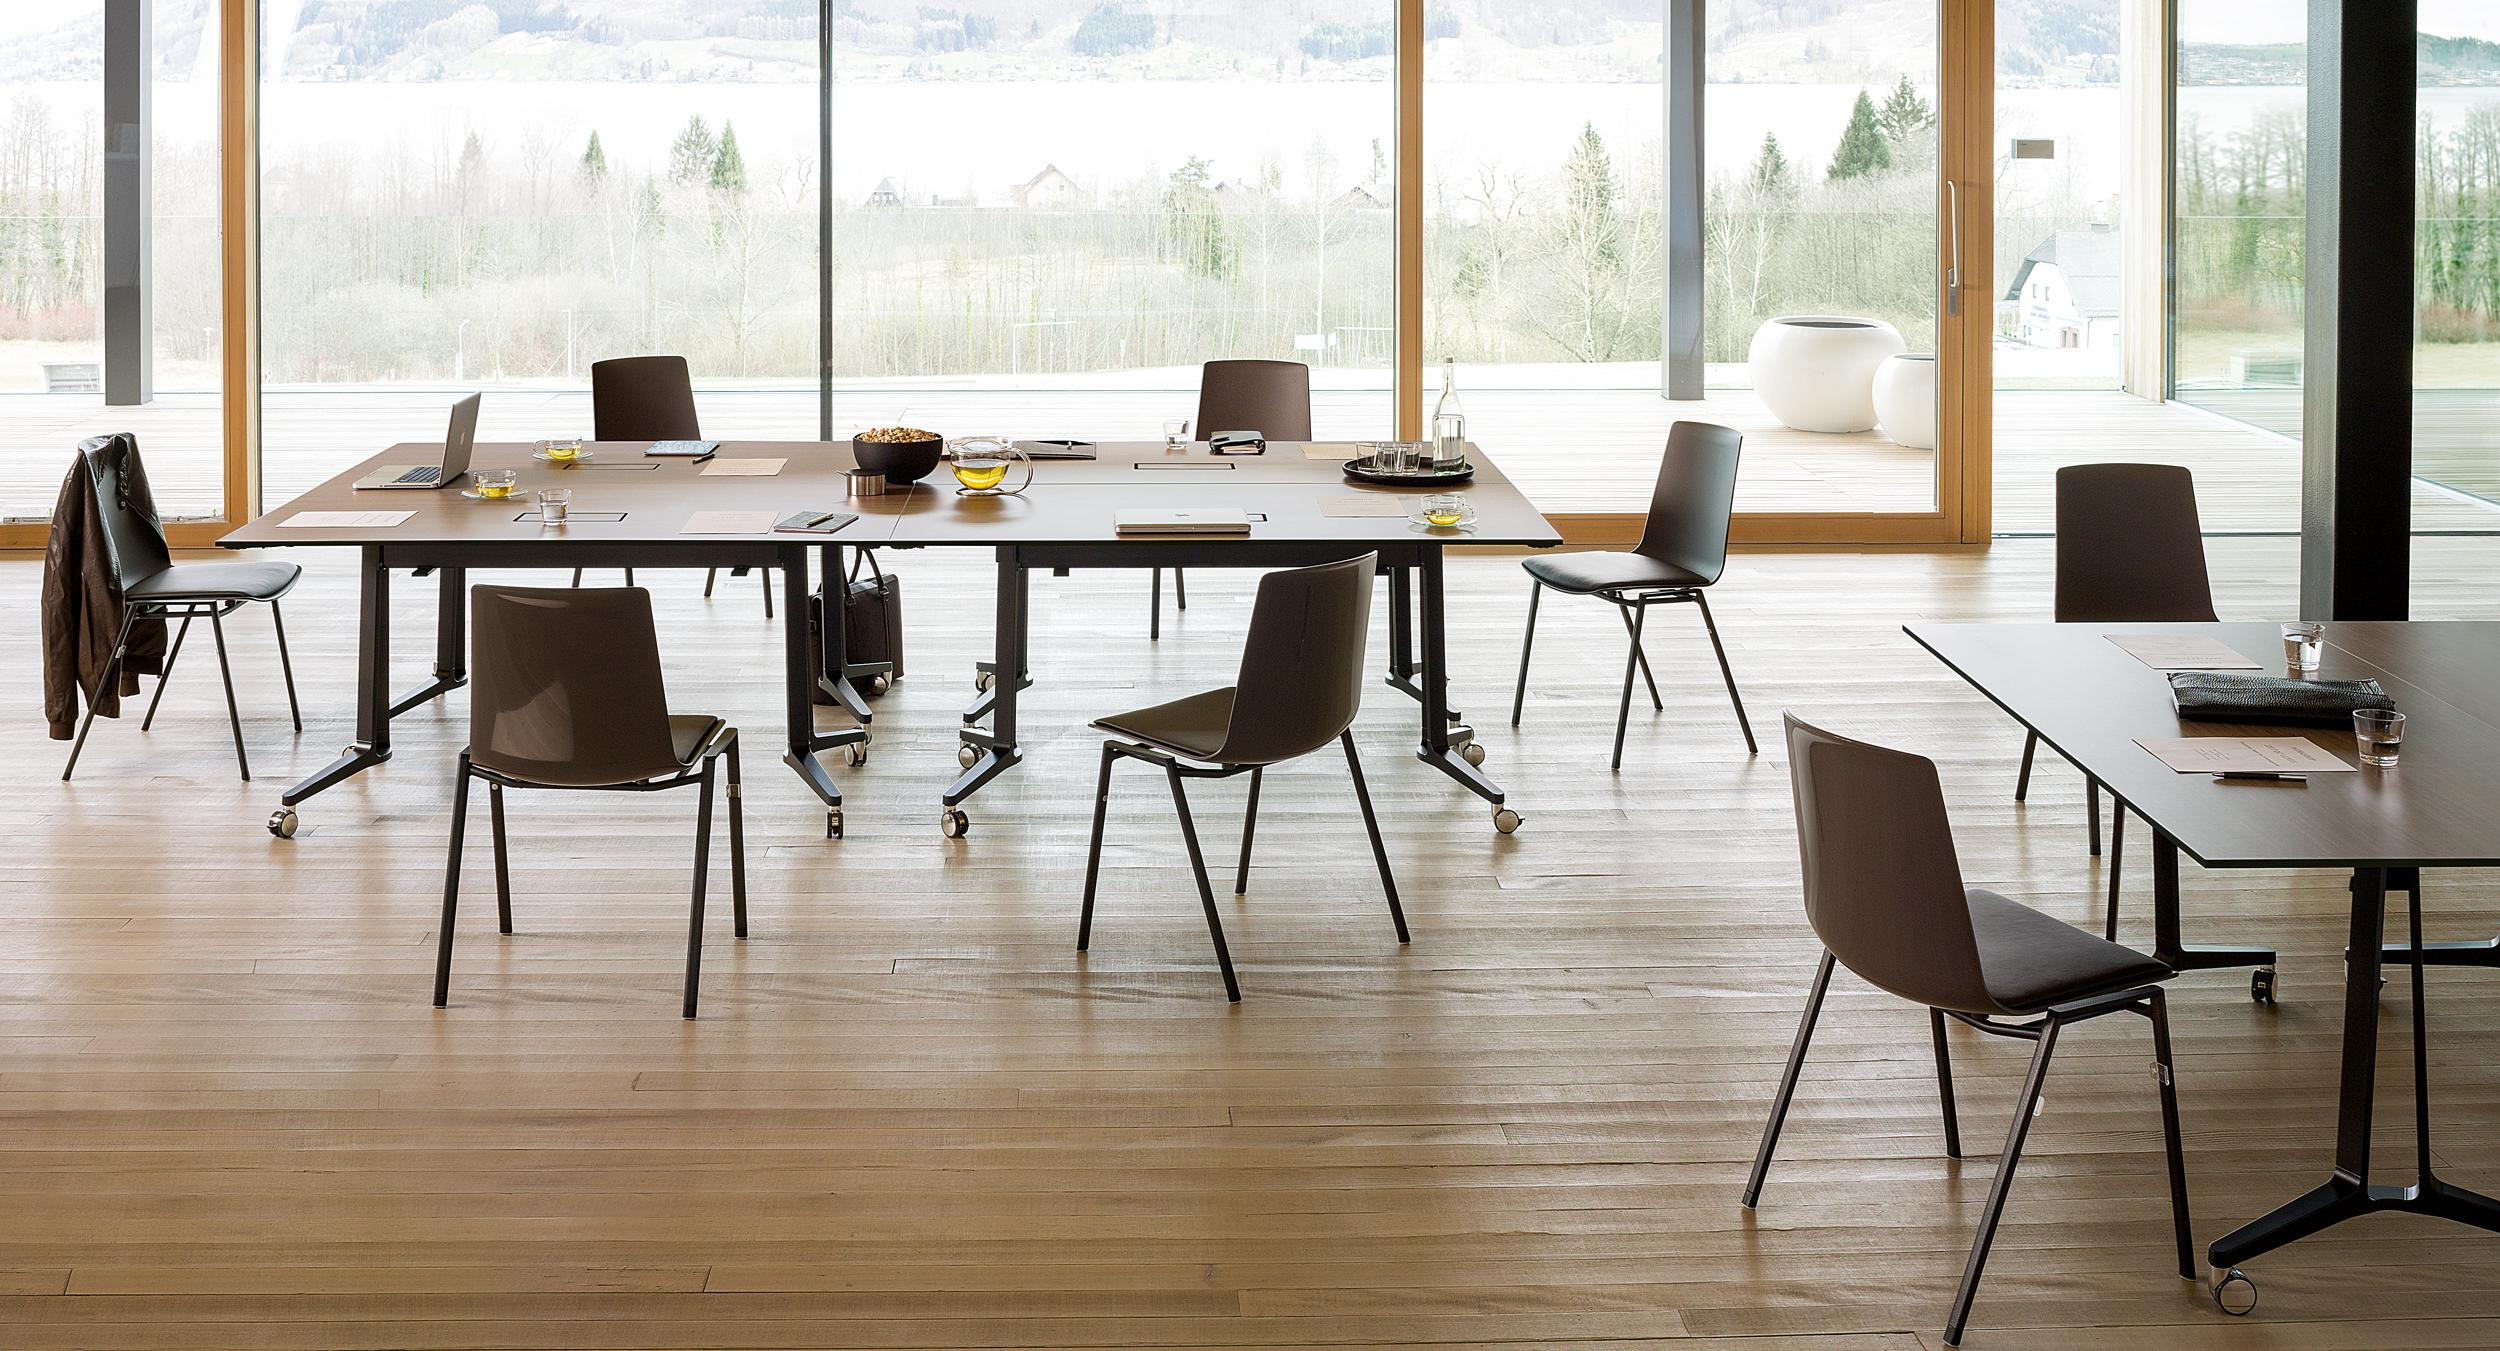 Skill V-leg tables provide versatility for multiple table configurations.